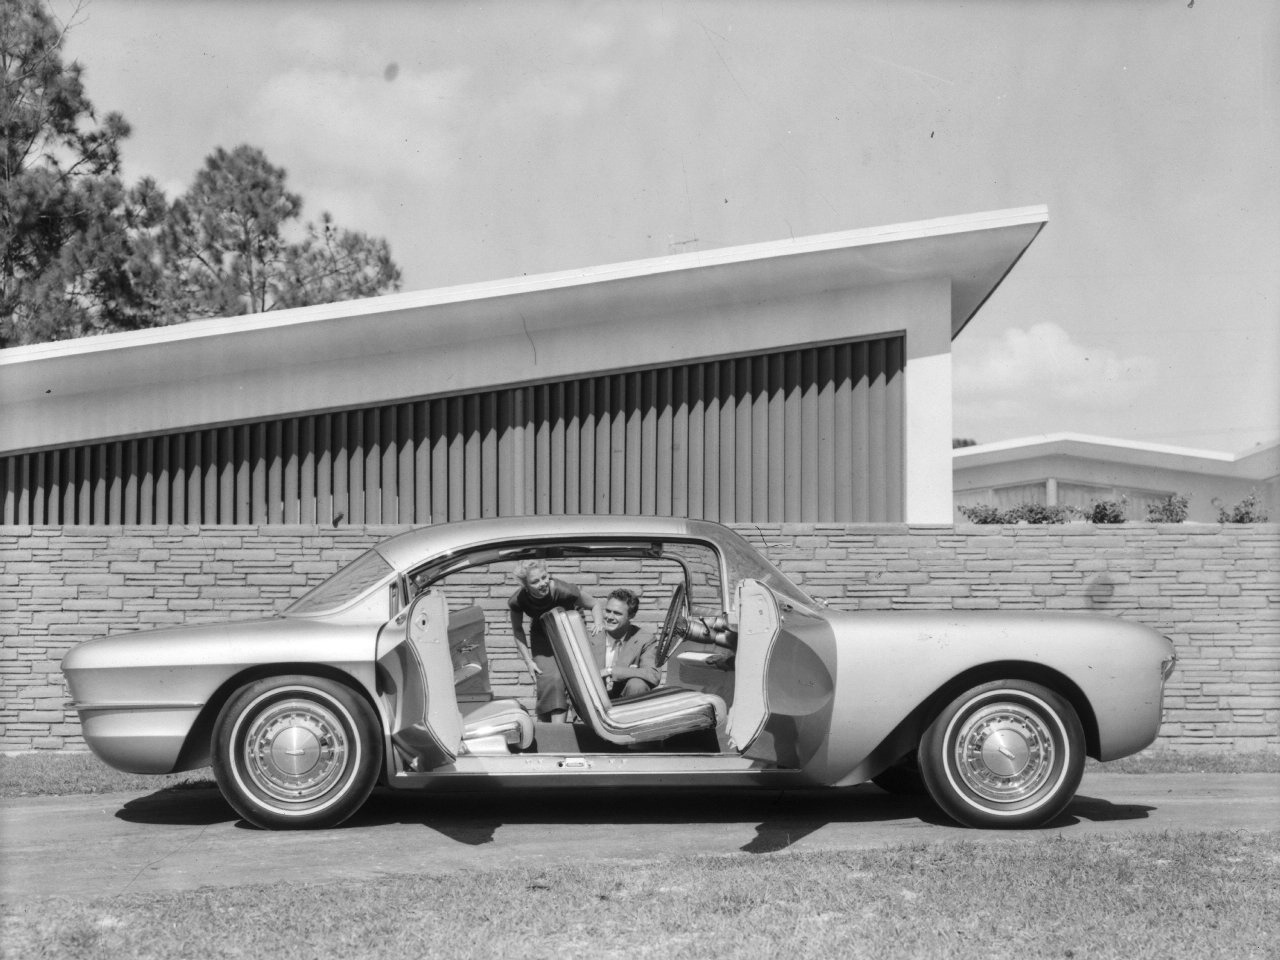 Chevrolet Biscayne Concept Car (1955) – Old Concept Cars